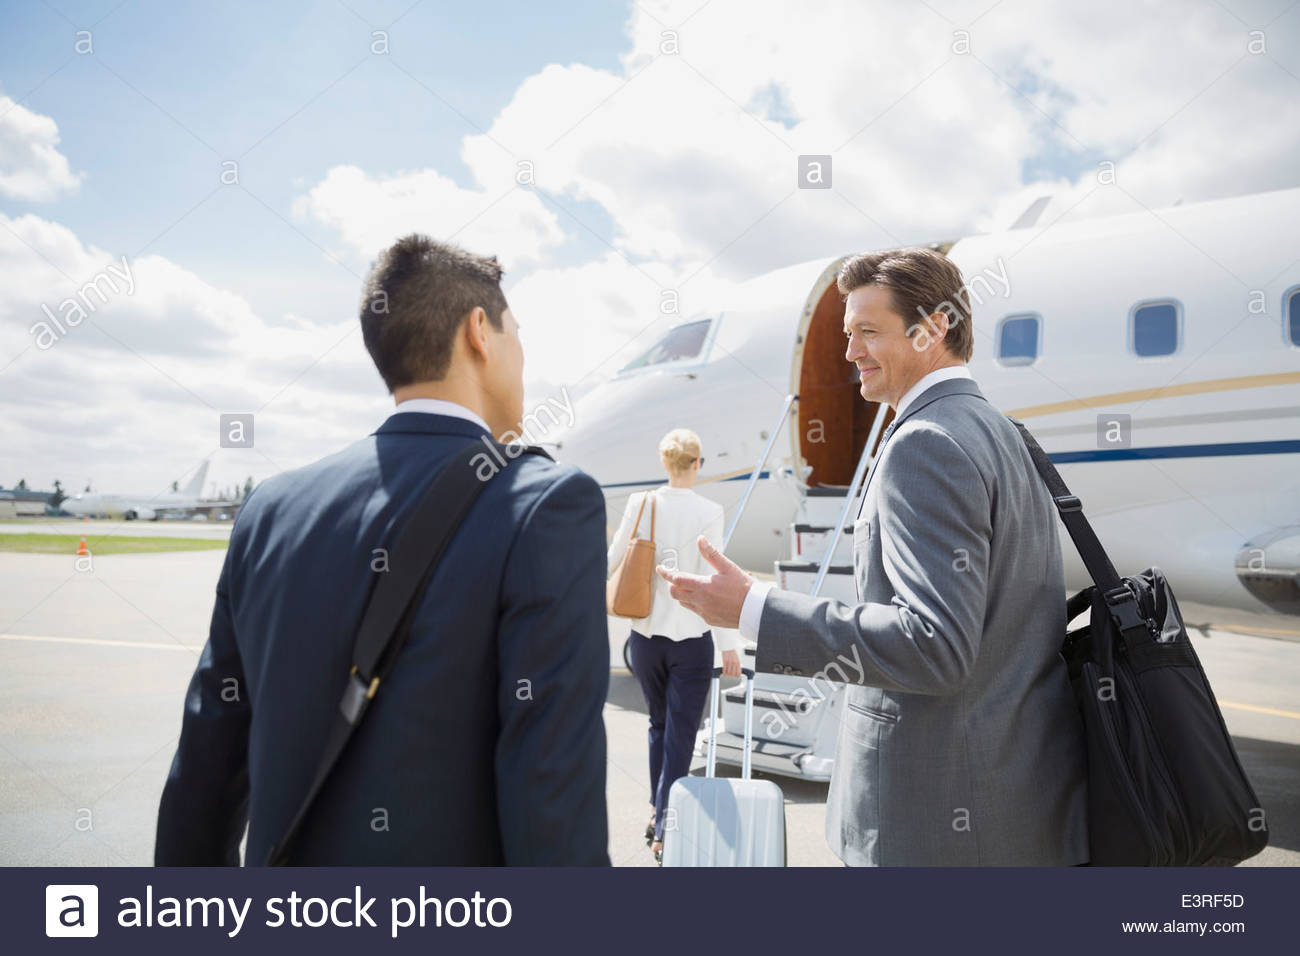 Businessmen talking on tarmac with corporate jet - Stock Image